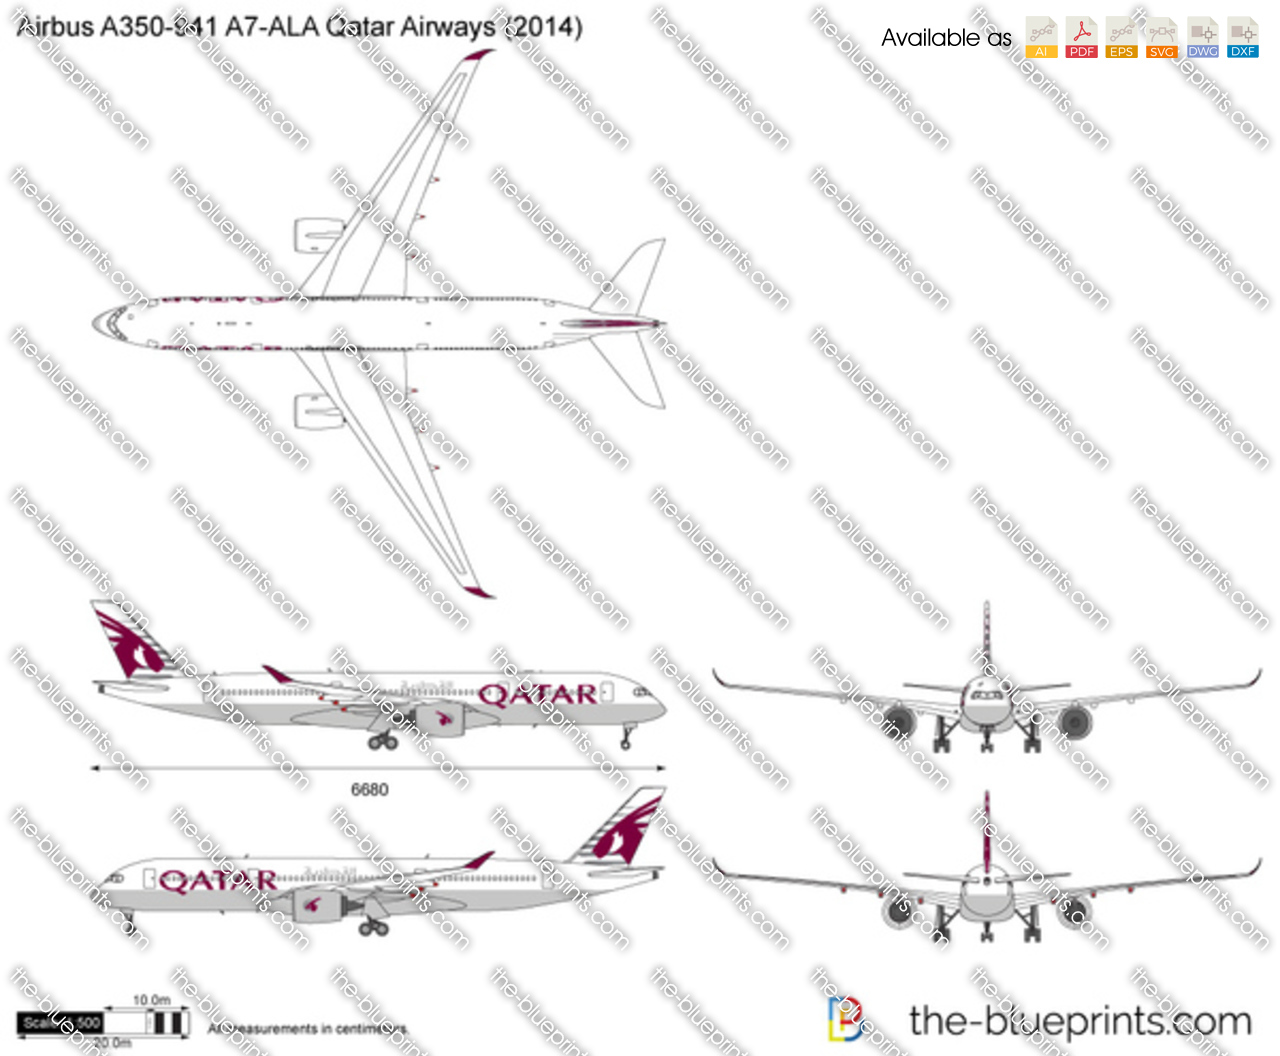 Airbus A350-941 A7-ALA Qatar Airways 2016